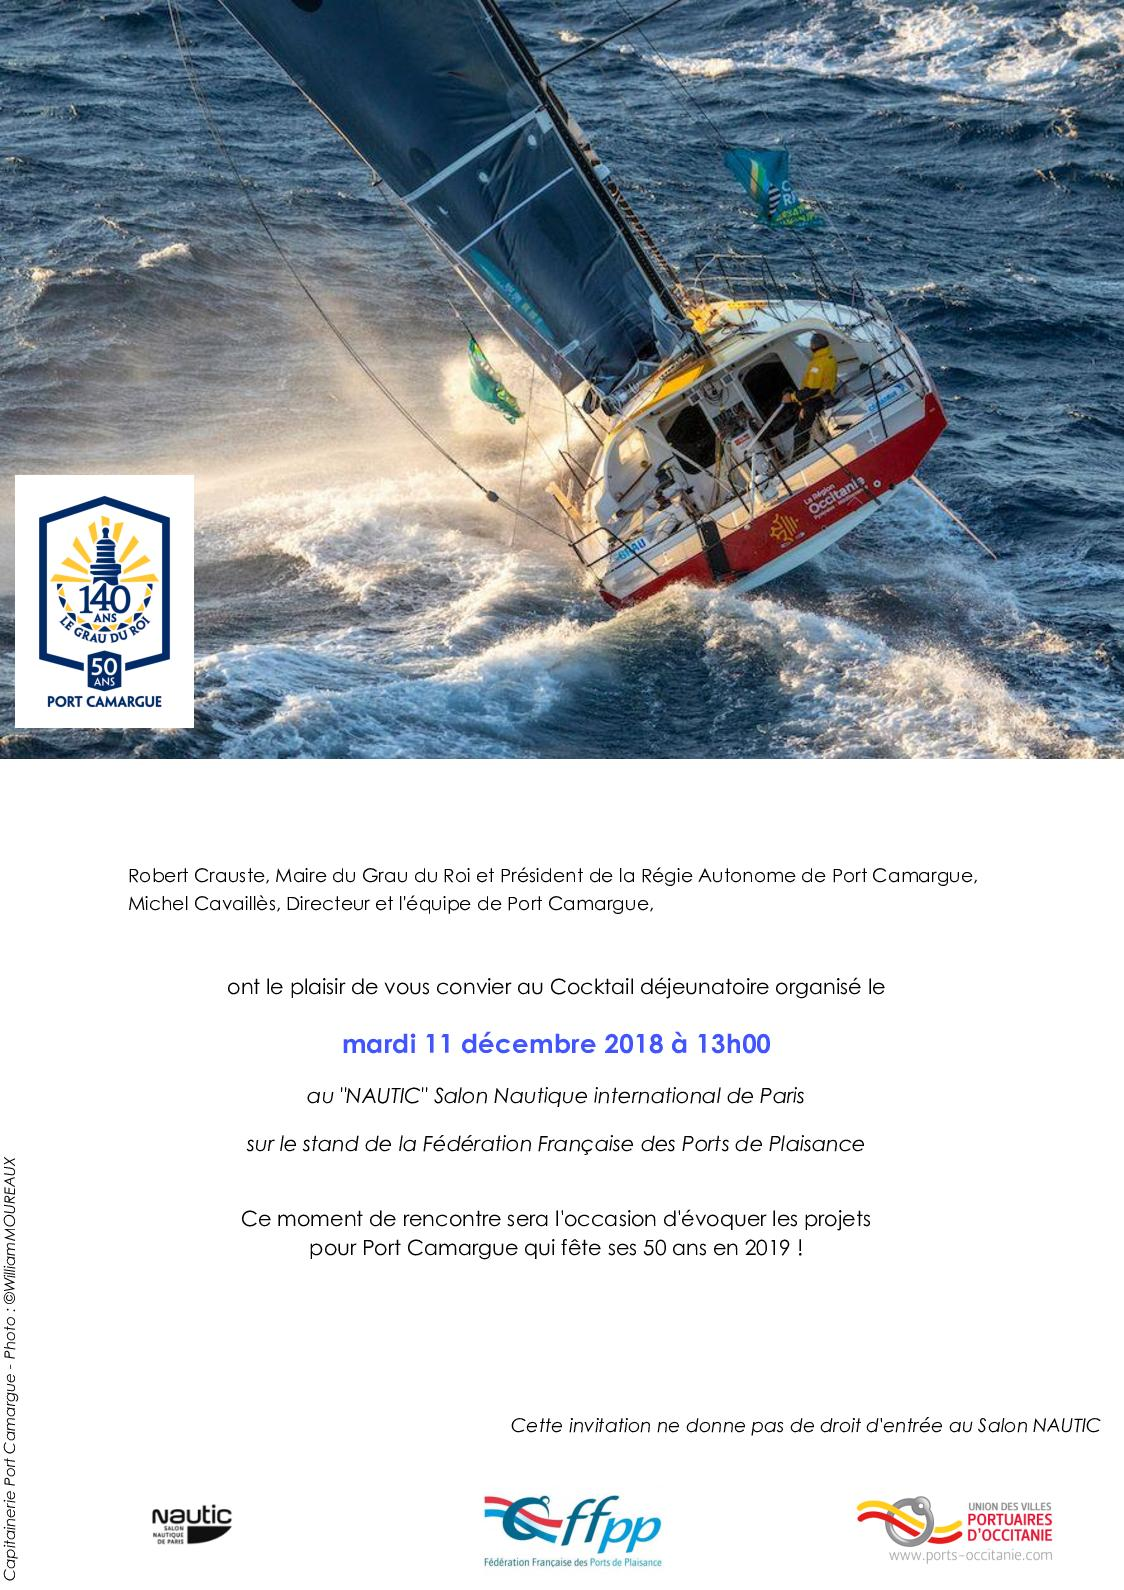 Salon Nautique International De Paris Calaméo Invit Port Camargue Nautic 11 Déc 2018